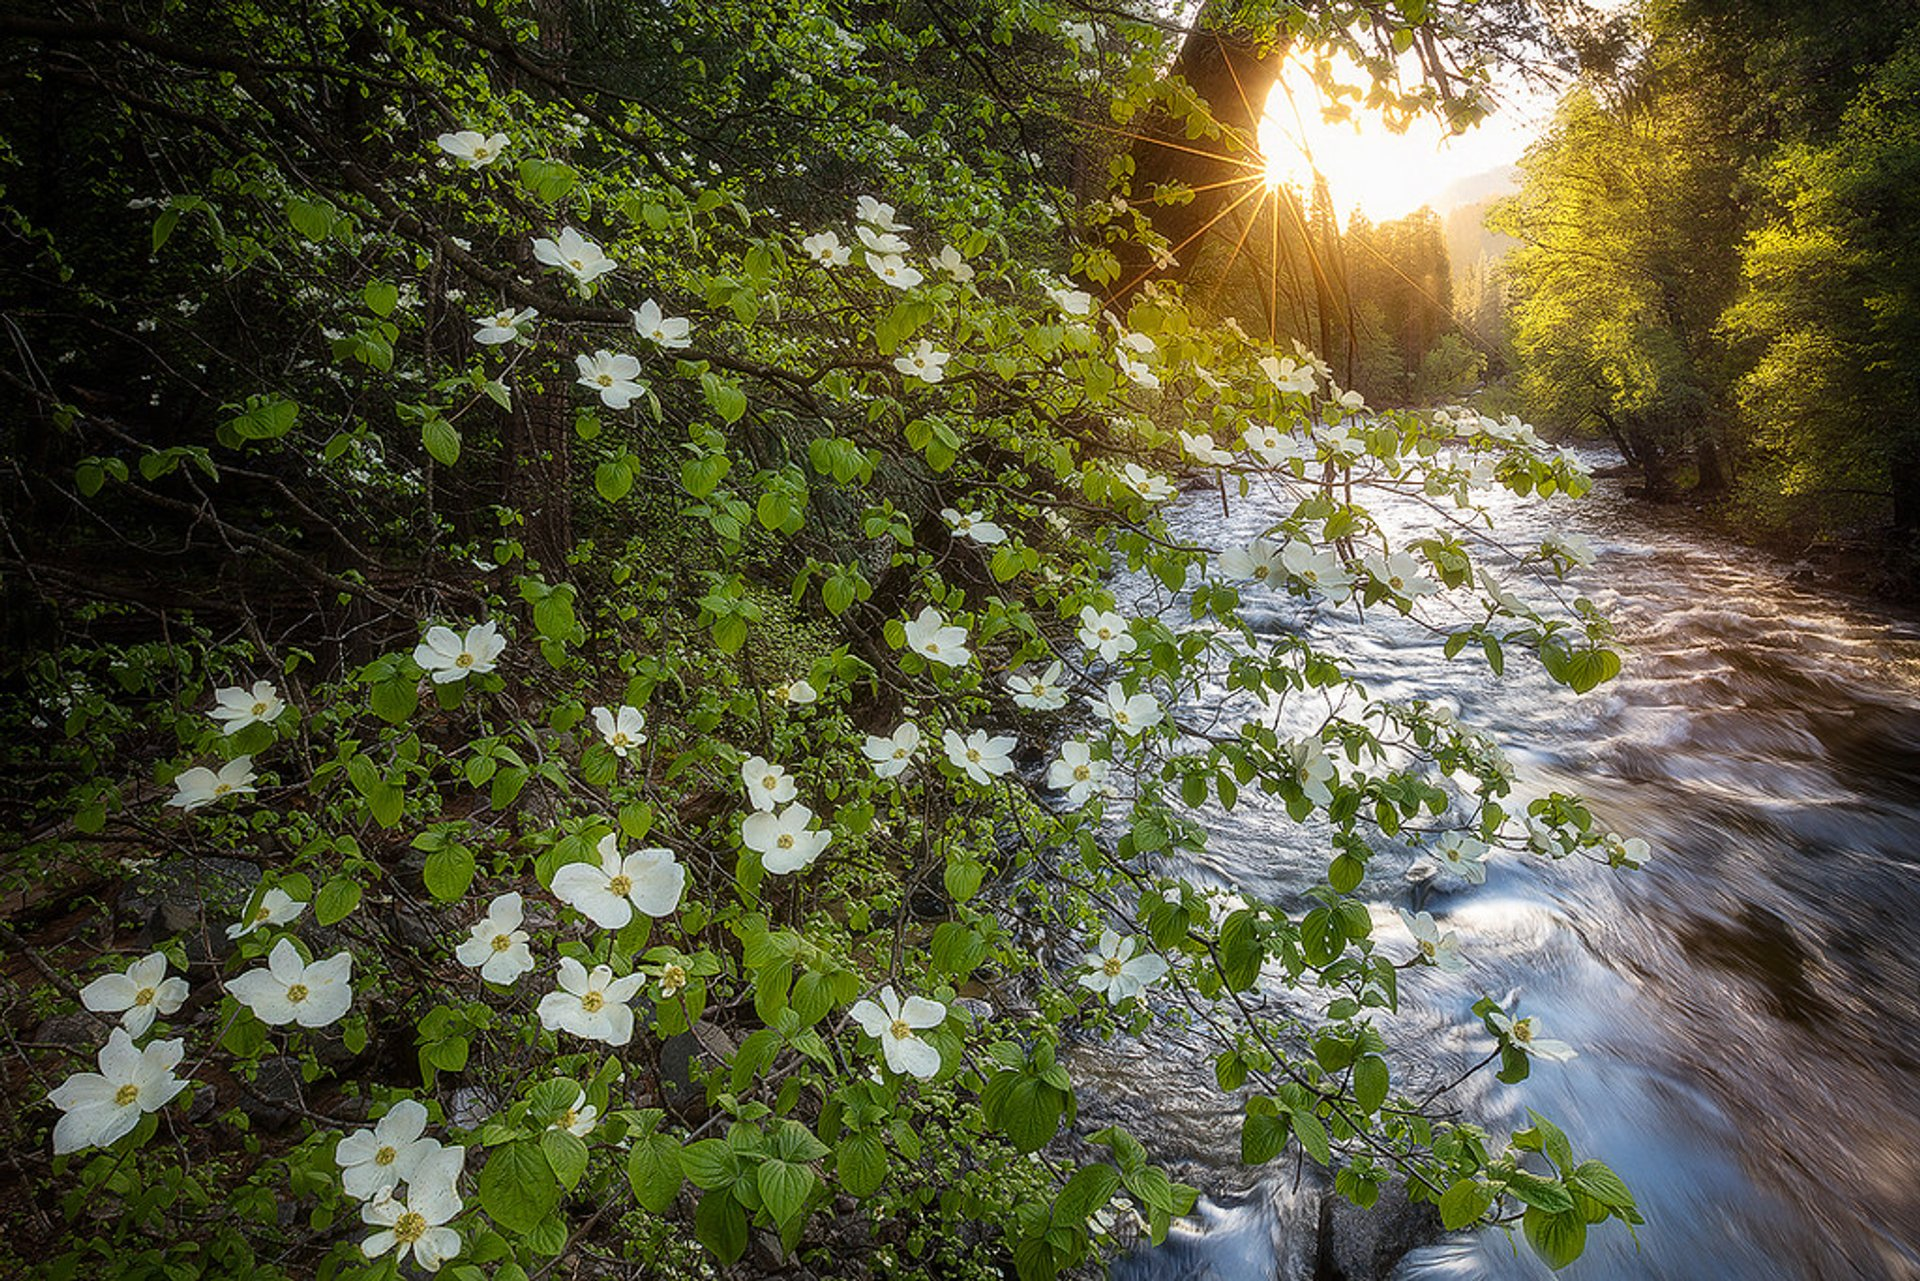 Dogwoods in Bloom in Yosemite 2020 - Best Time